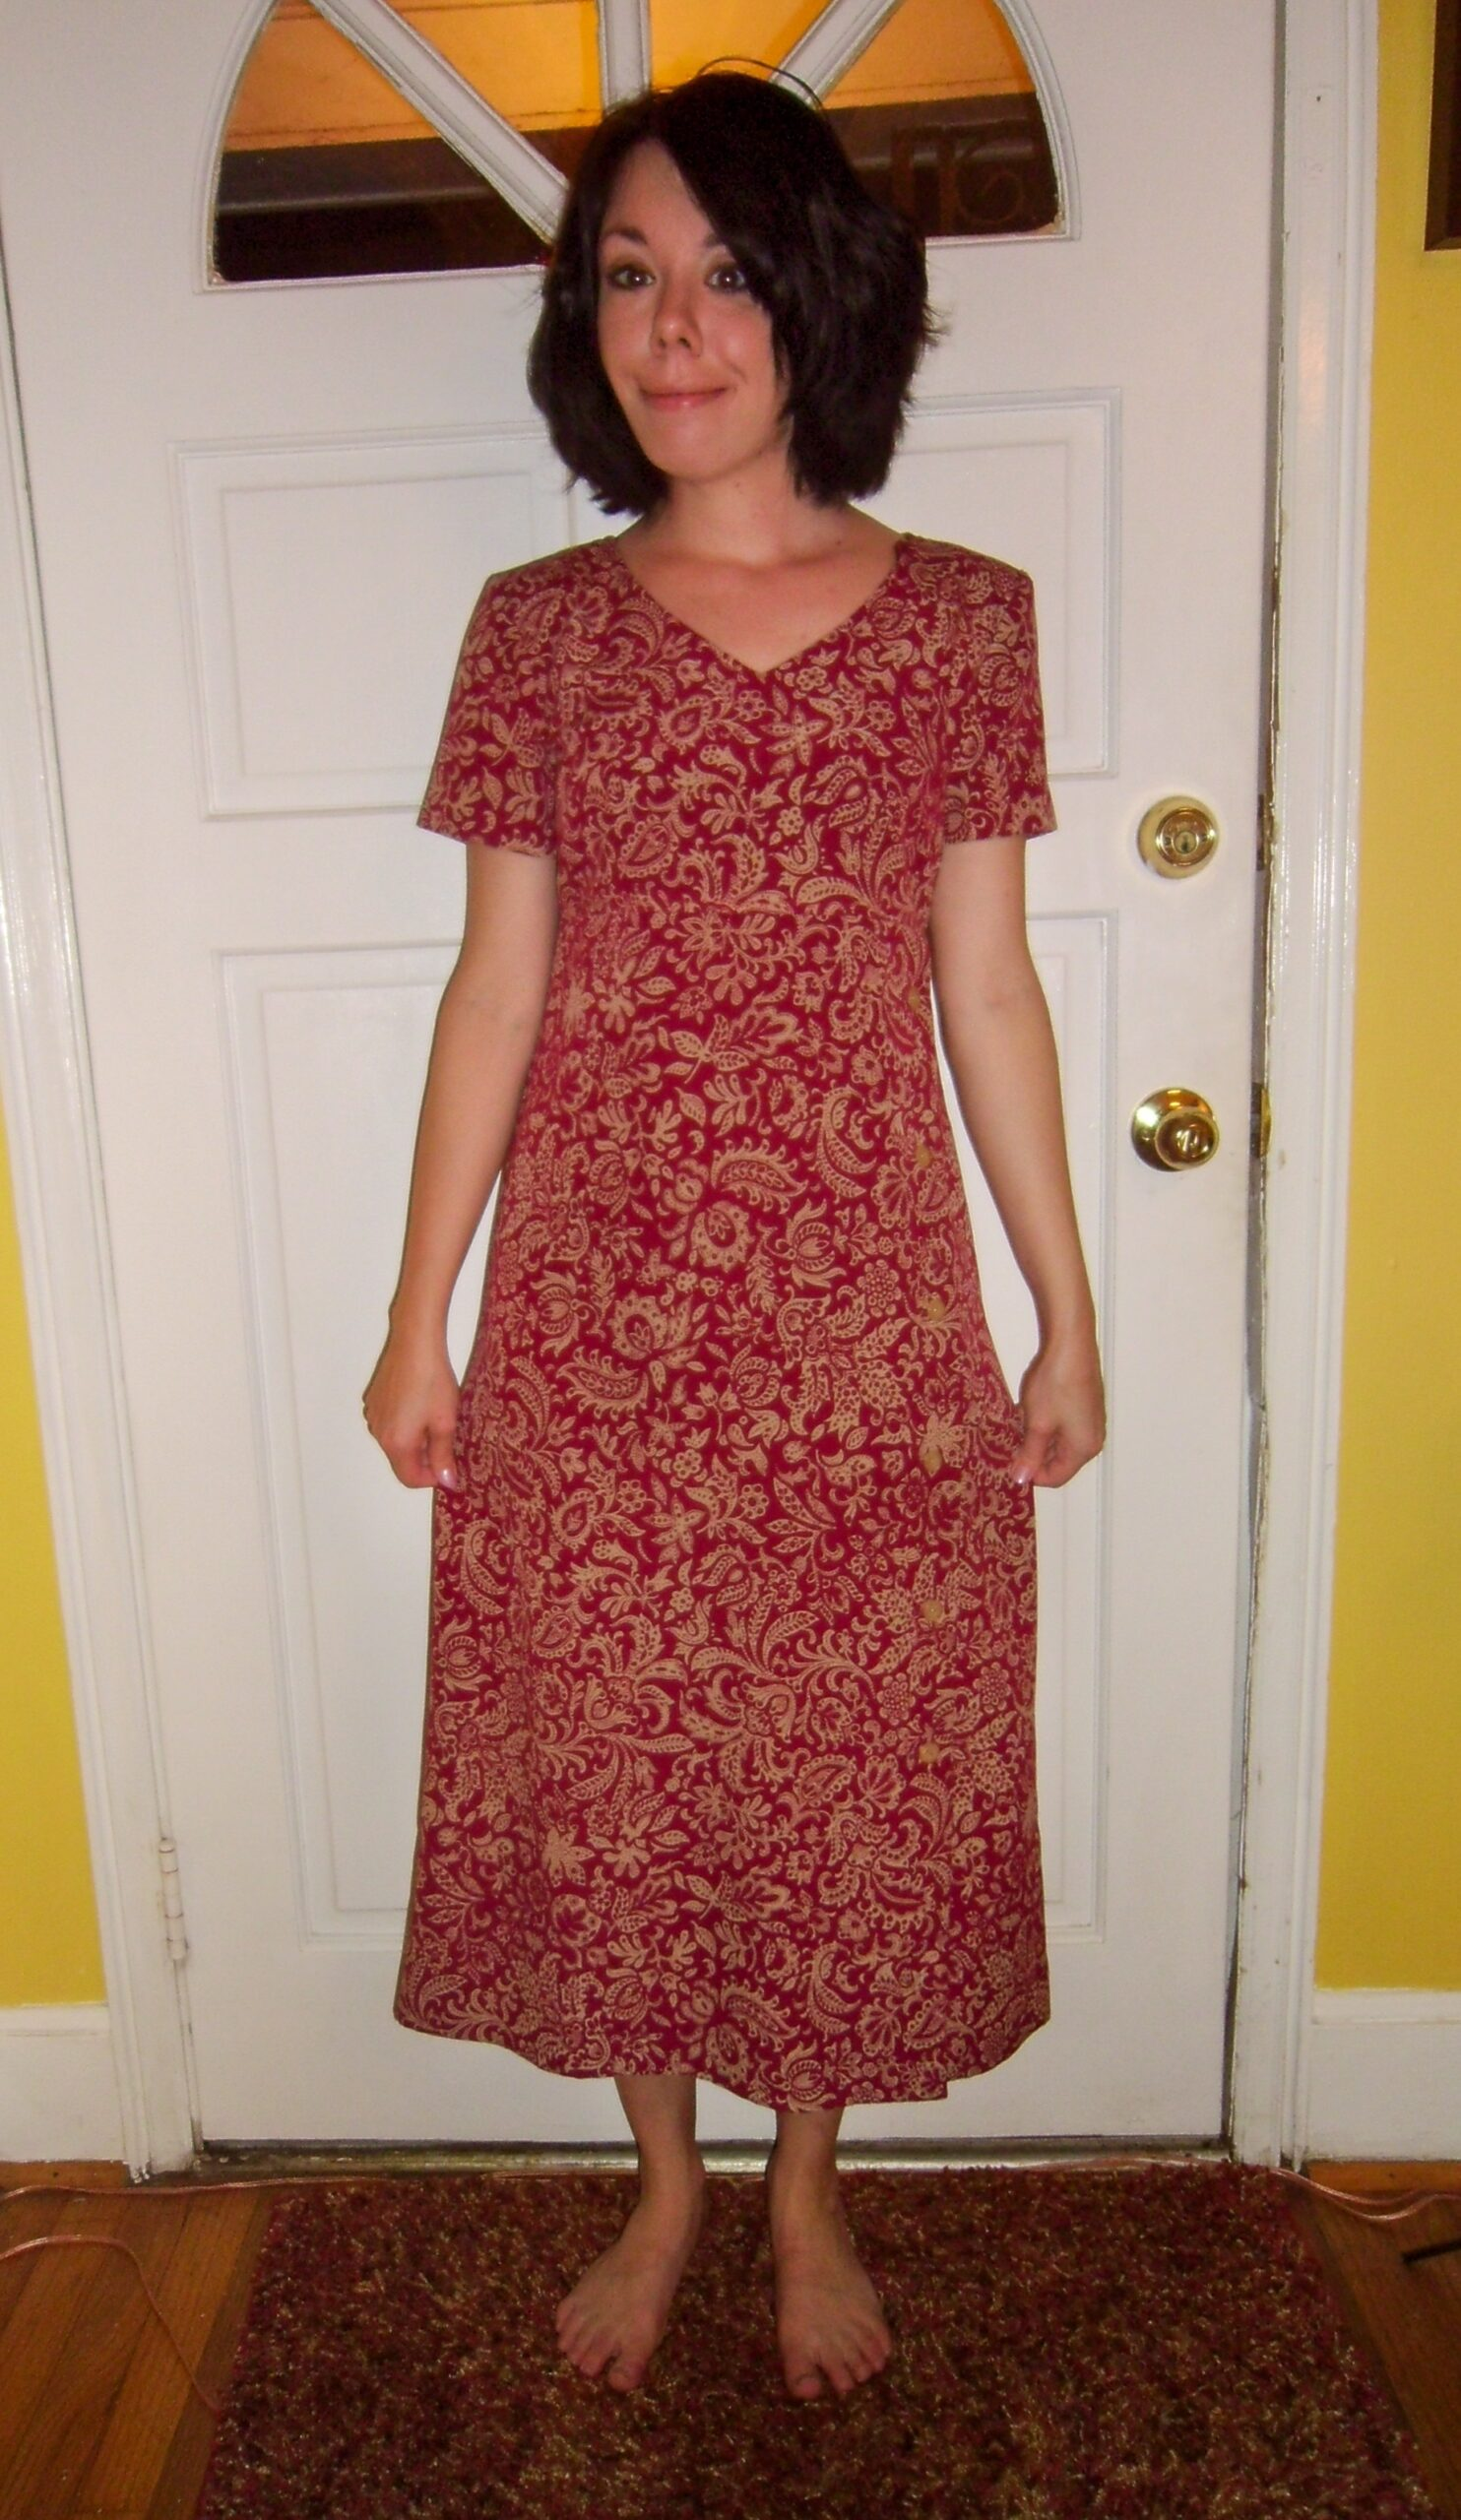 Shortening a Thrift Store Dress Before